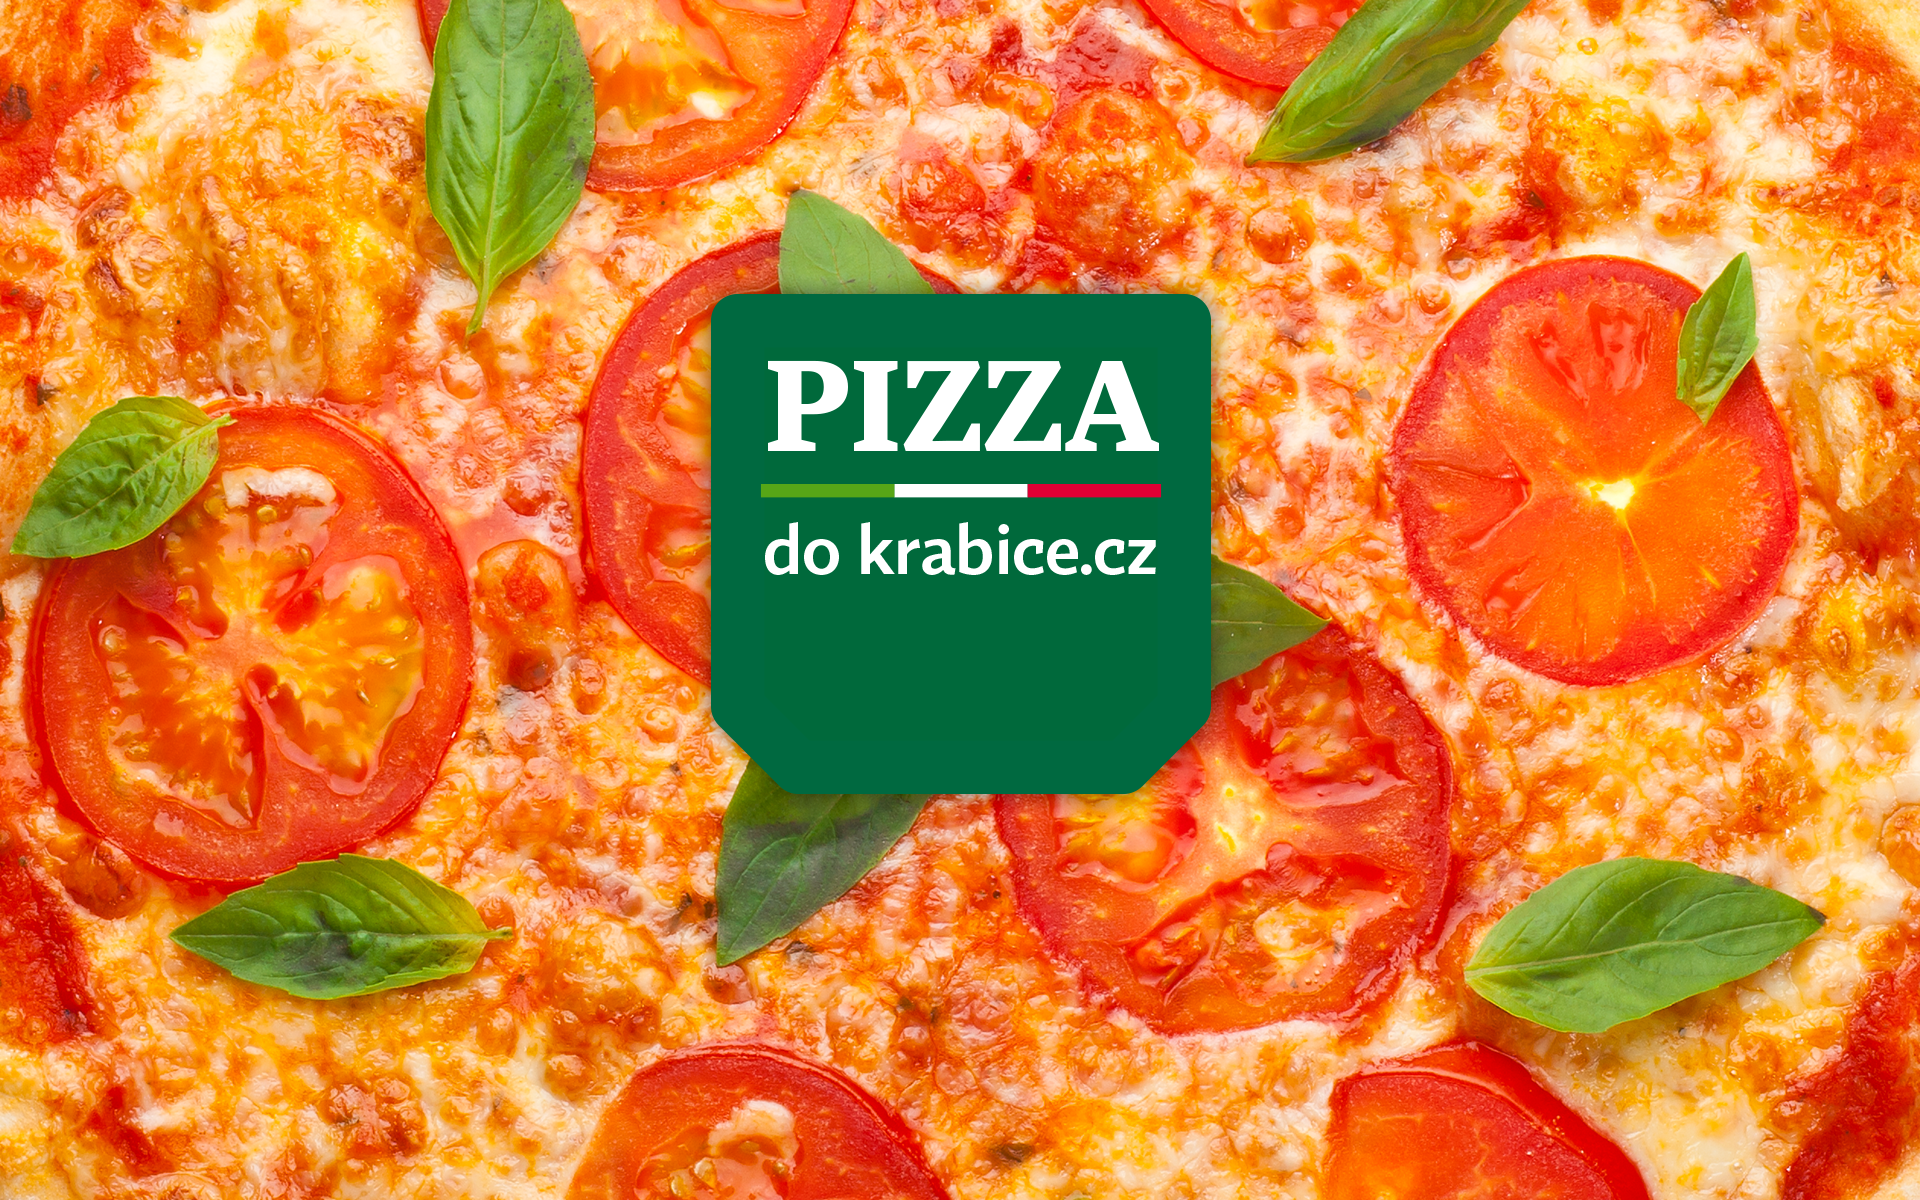 Pizza do krabice